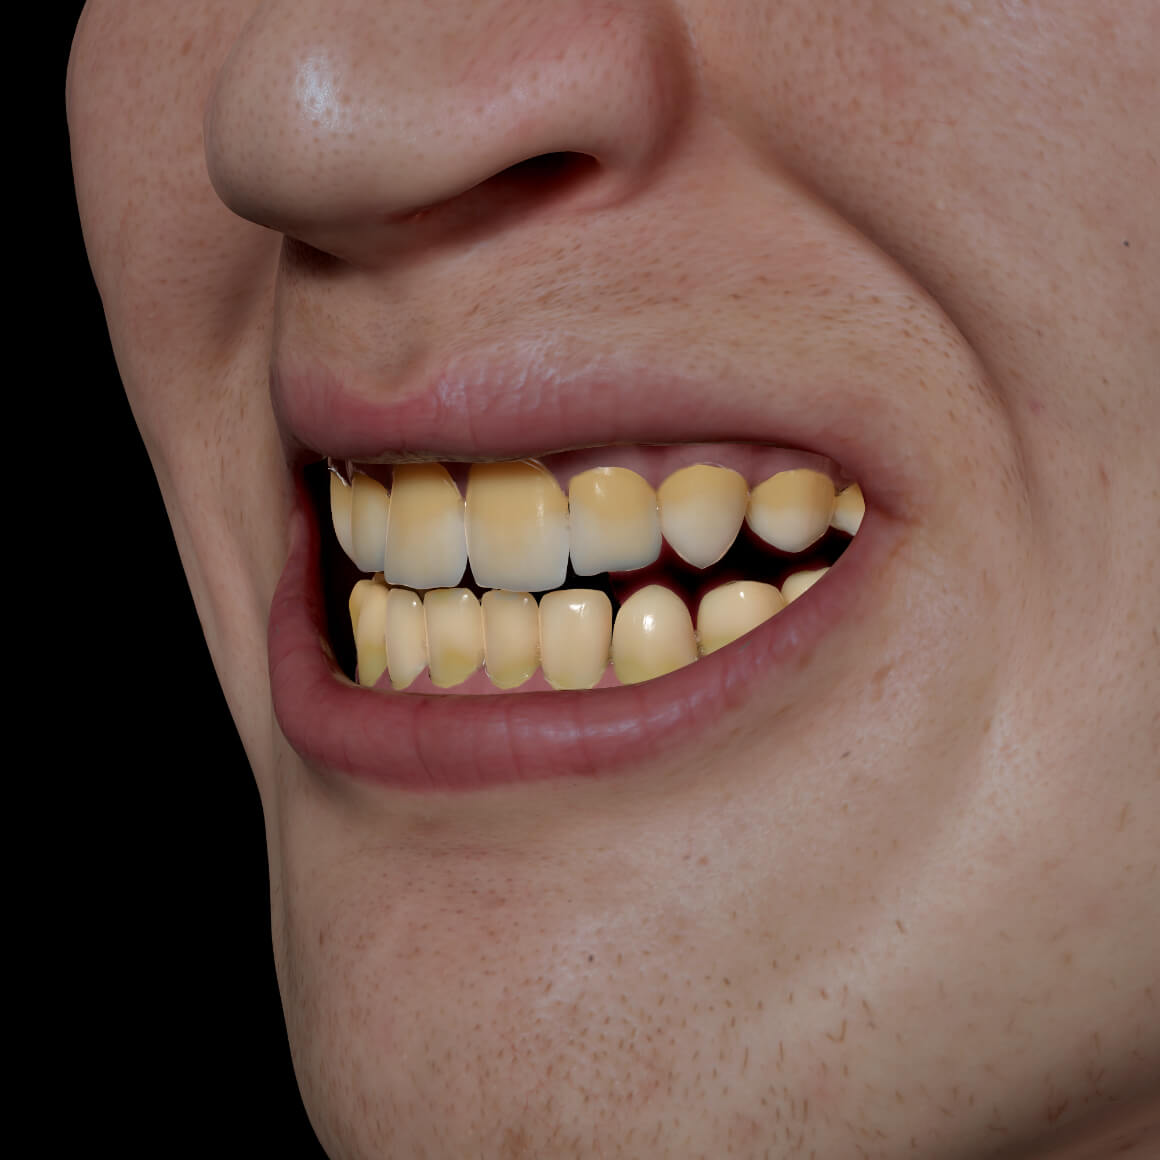 Smile of a Clinique Chloé patient positioned at an angle showing discolored, yellow teeth